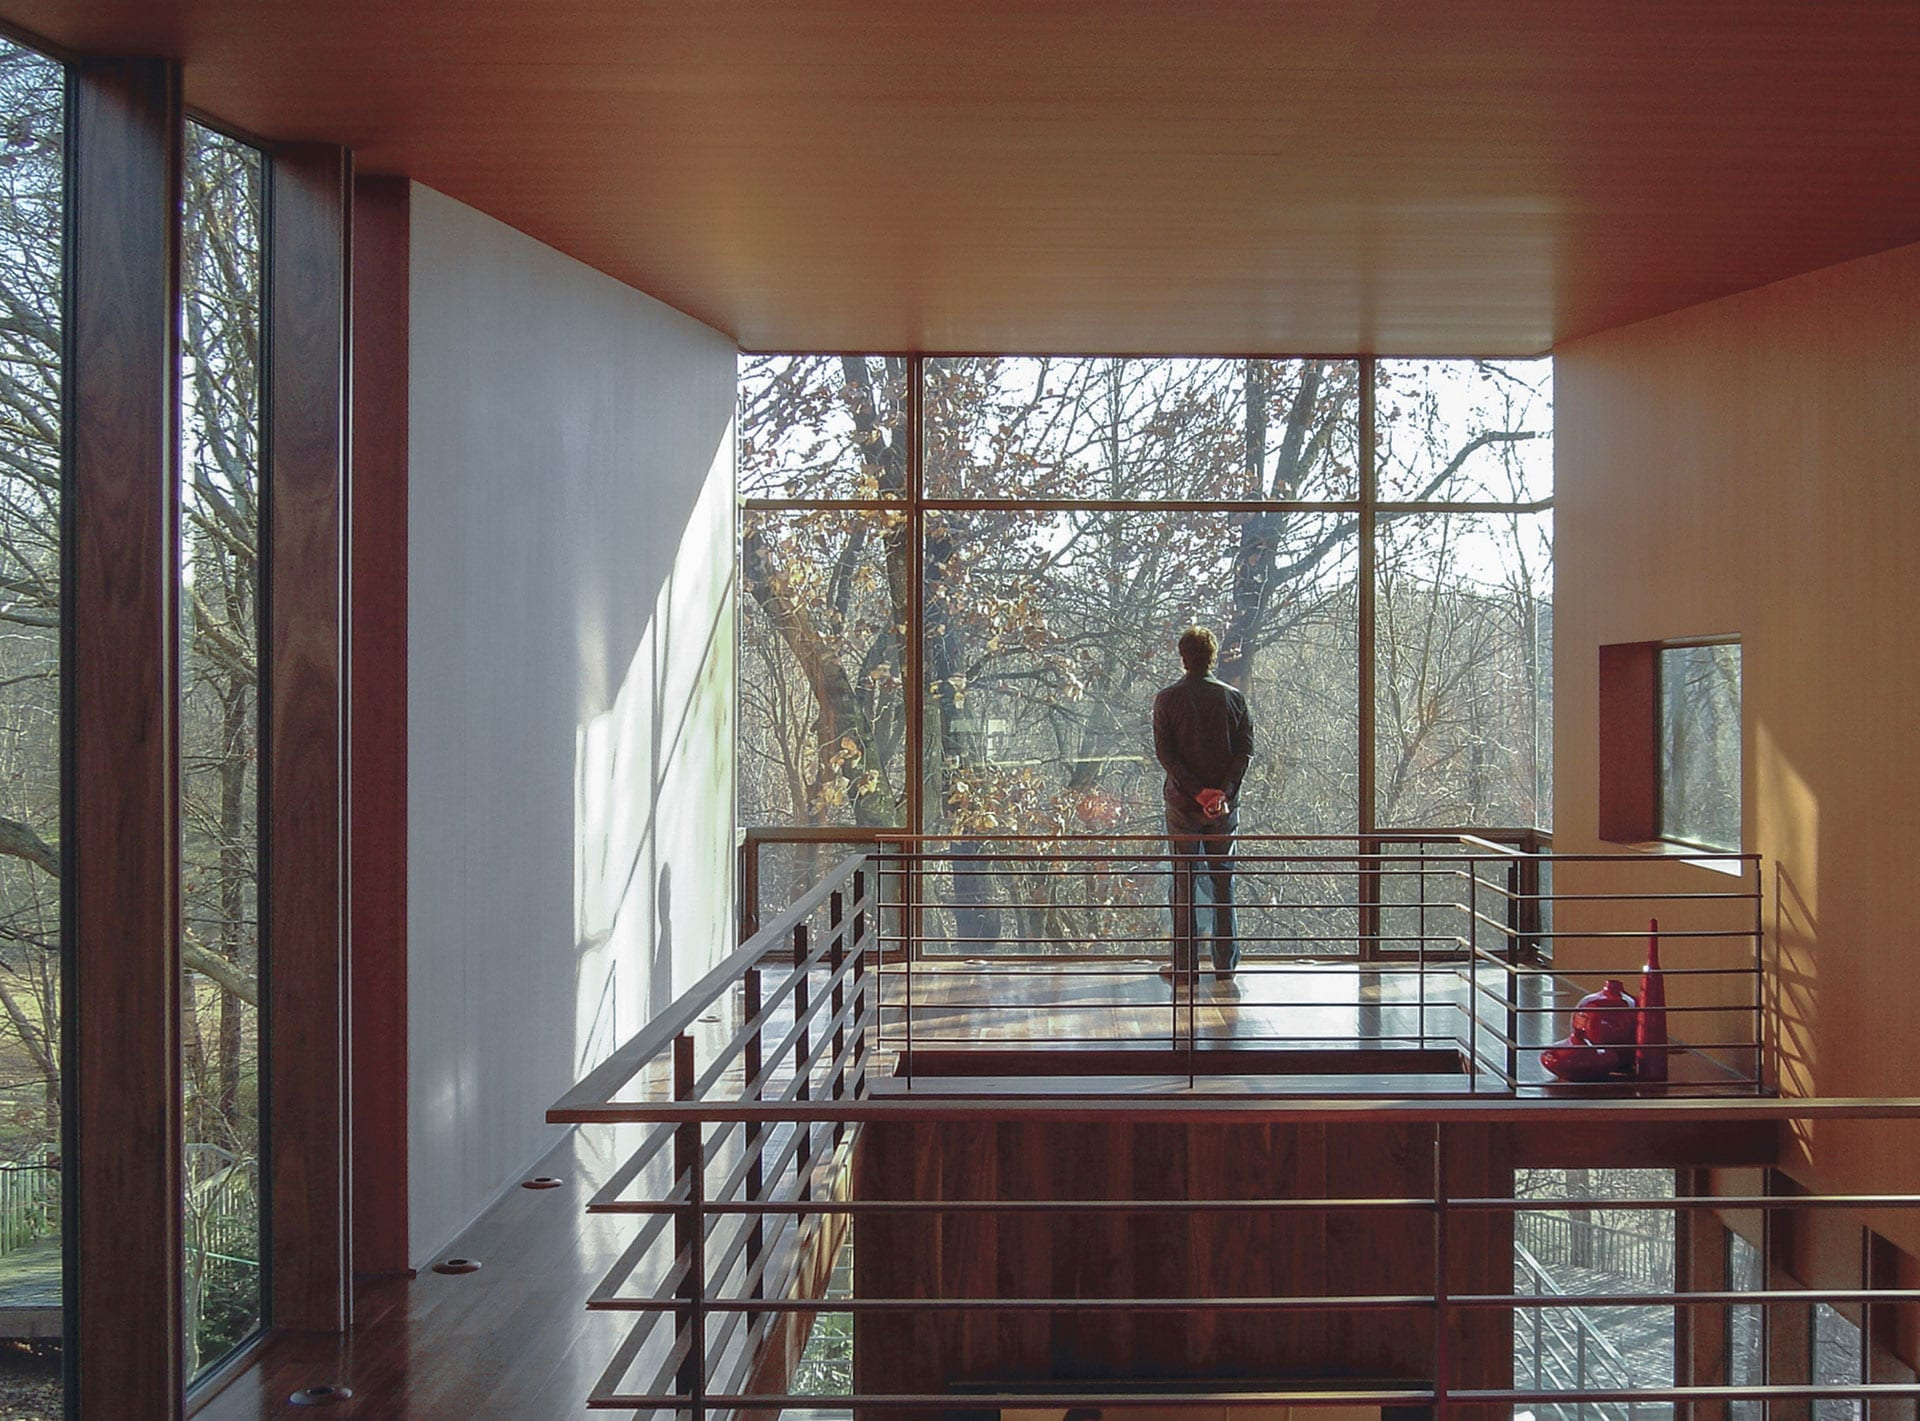 Arkansas House designed by Marlon Blackwell.